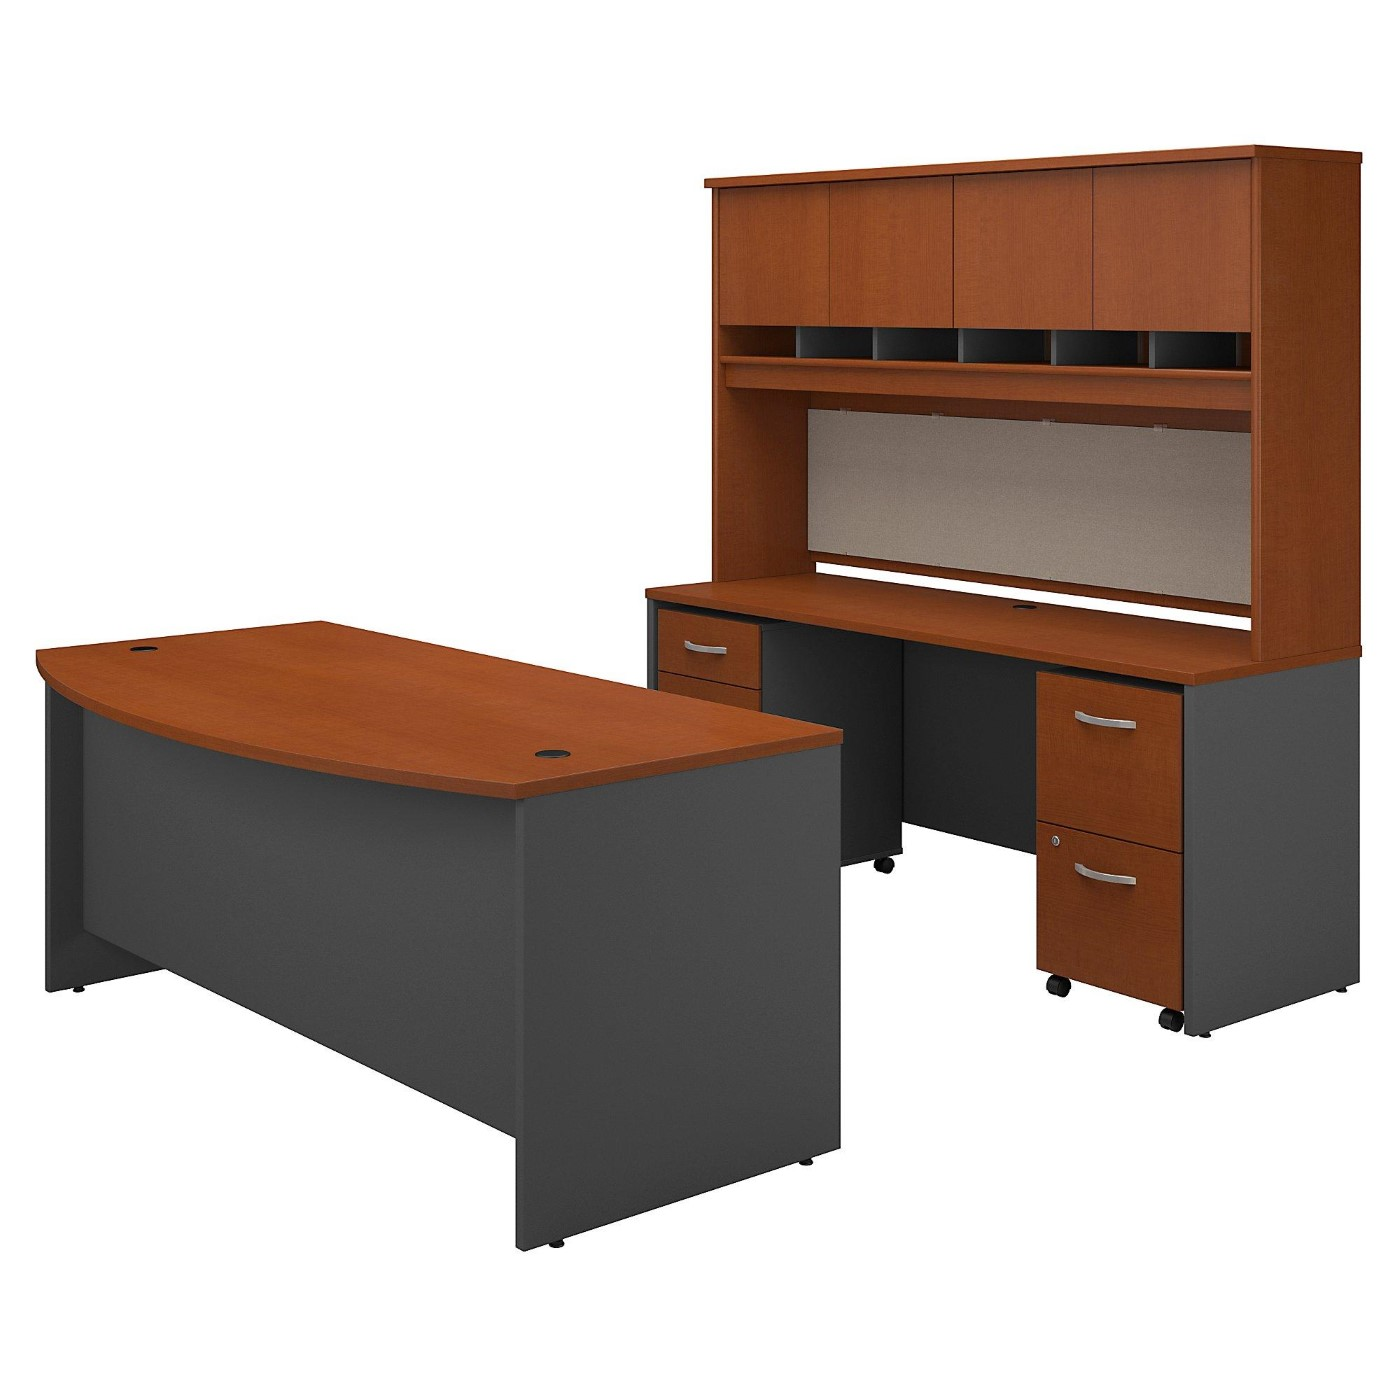 BUSH BUSINESS FURNITURE SERIES C BOW FRONT DESK WITH CREDENZA, HUTCH AND STORAGE. FREE SHIPPING  VIDEO BELOW.  SALE DEDUCT 10% MORE ENTER '10percent' IN COUPON CODE BOX WHILE CHECKING OUT.